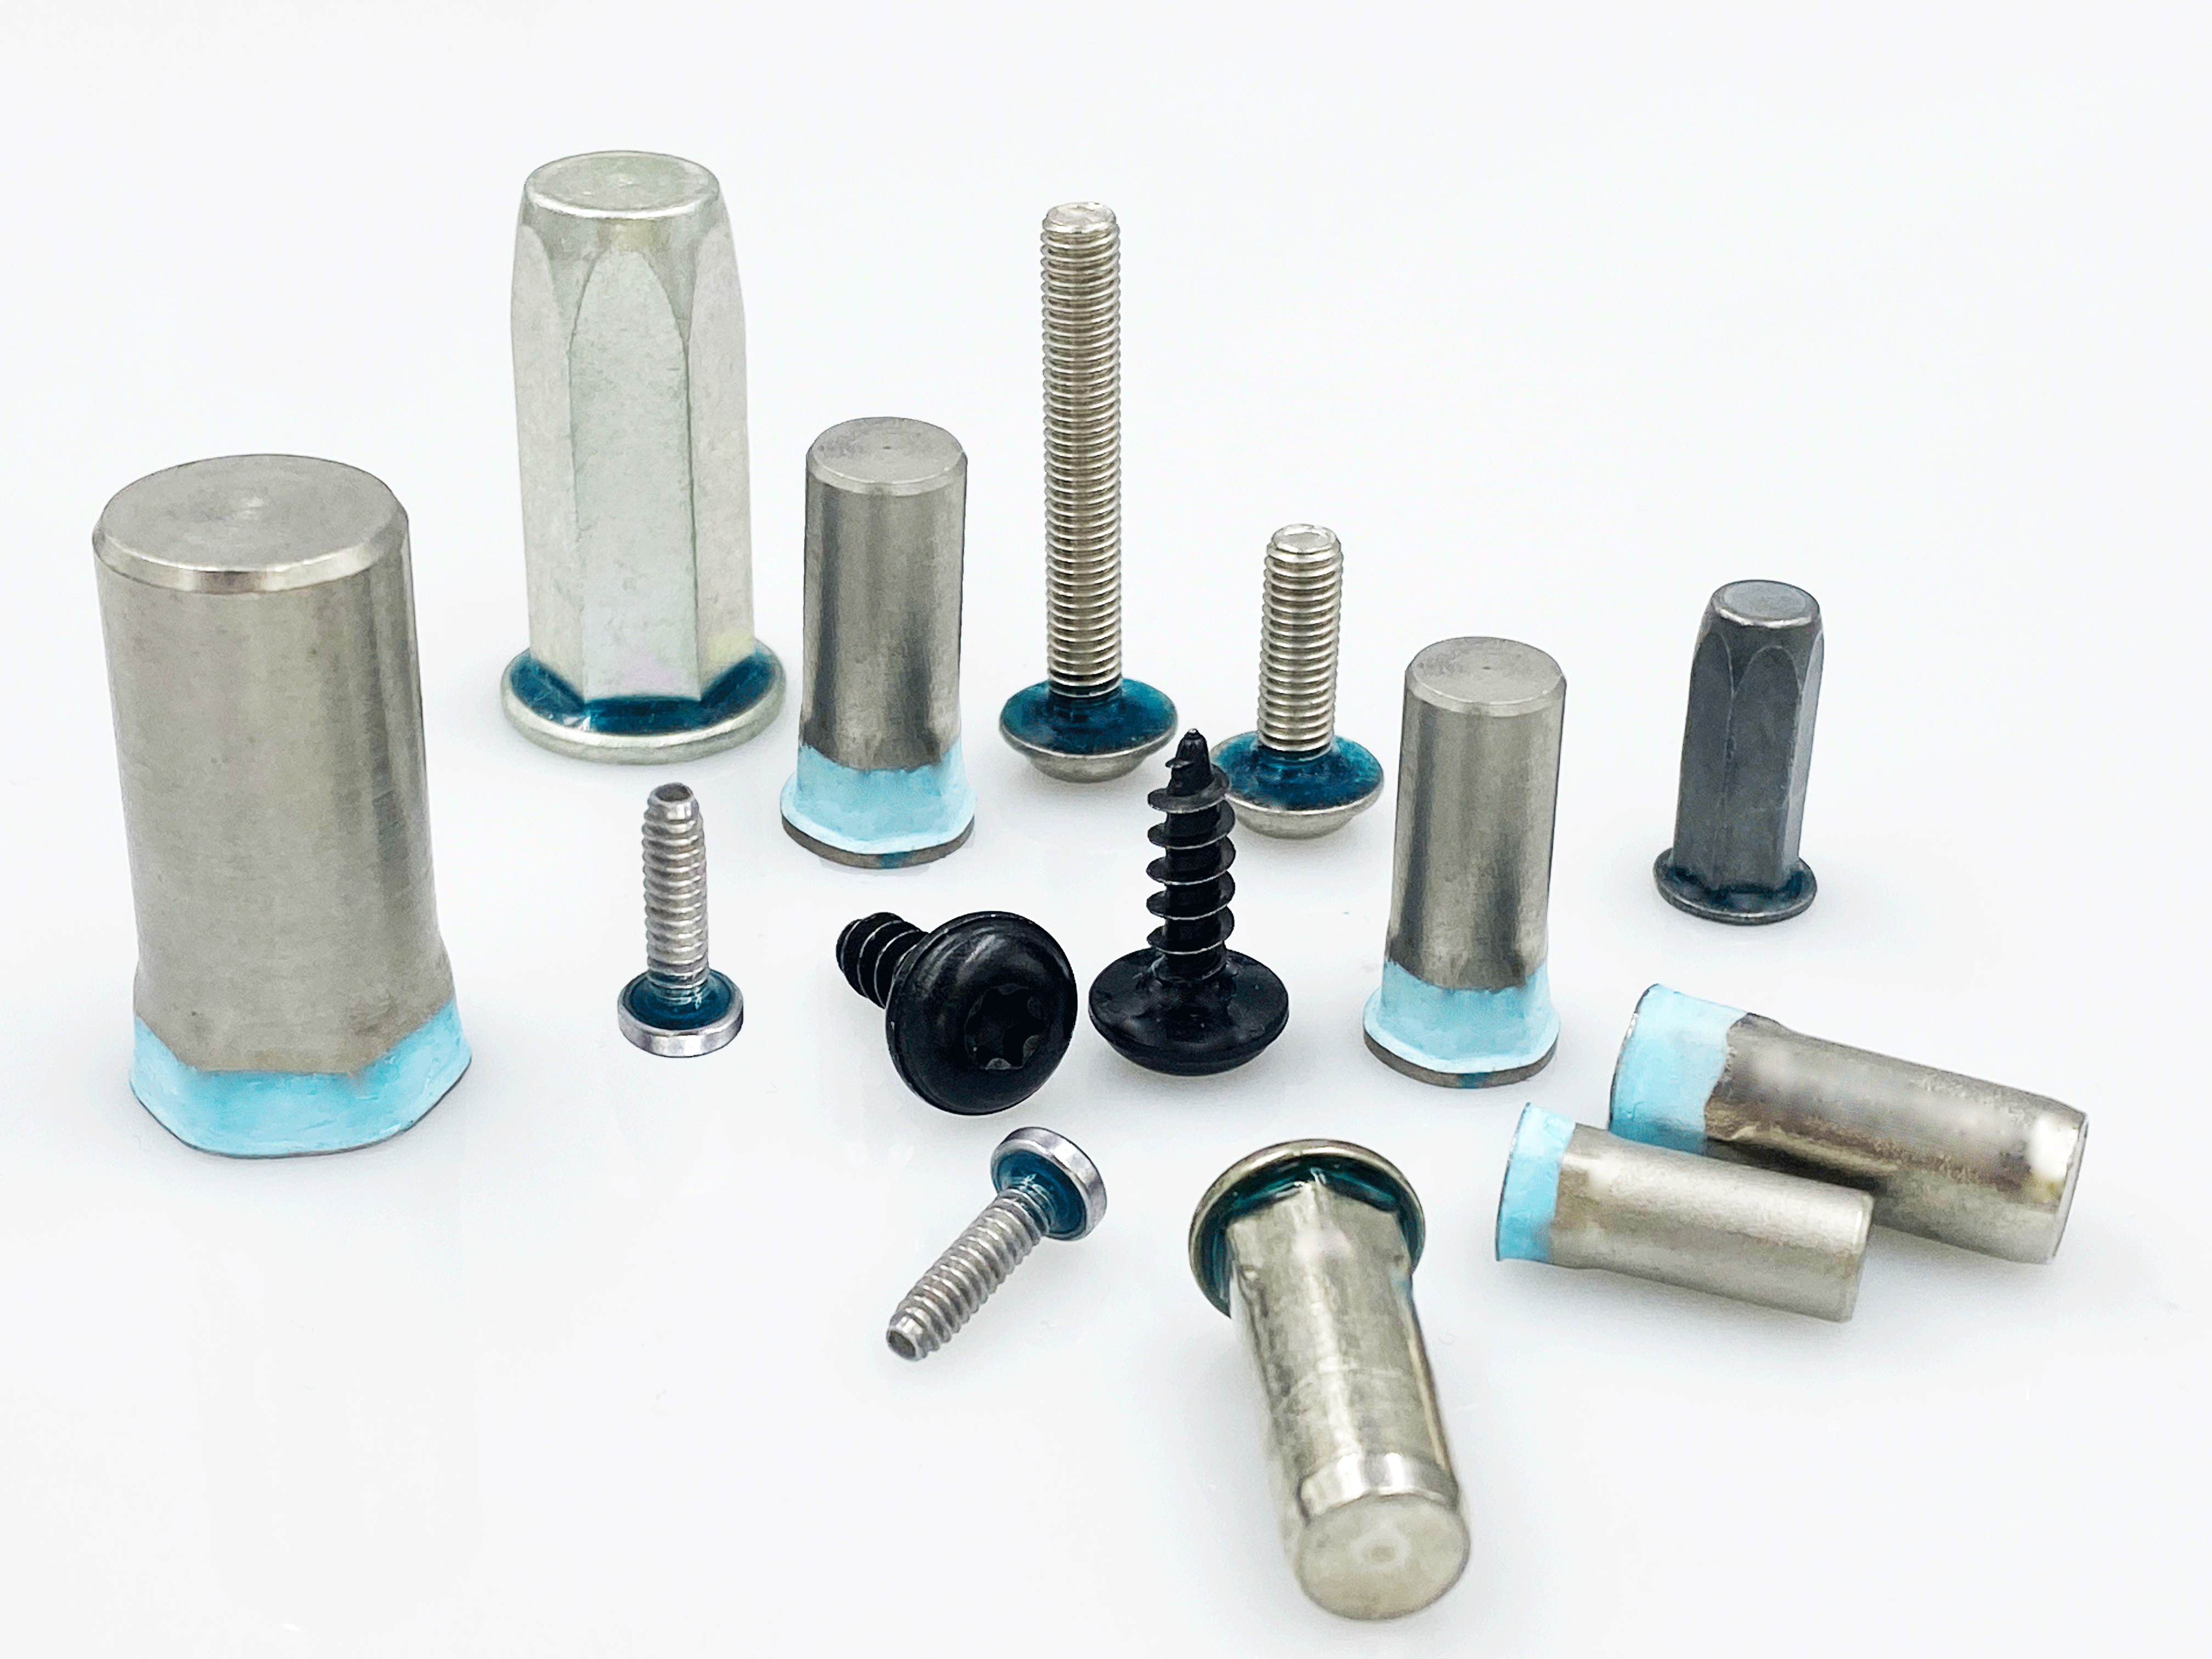 Sealing under heads of threaded screws for plastic – Precote 200